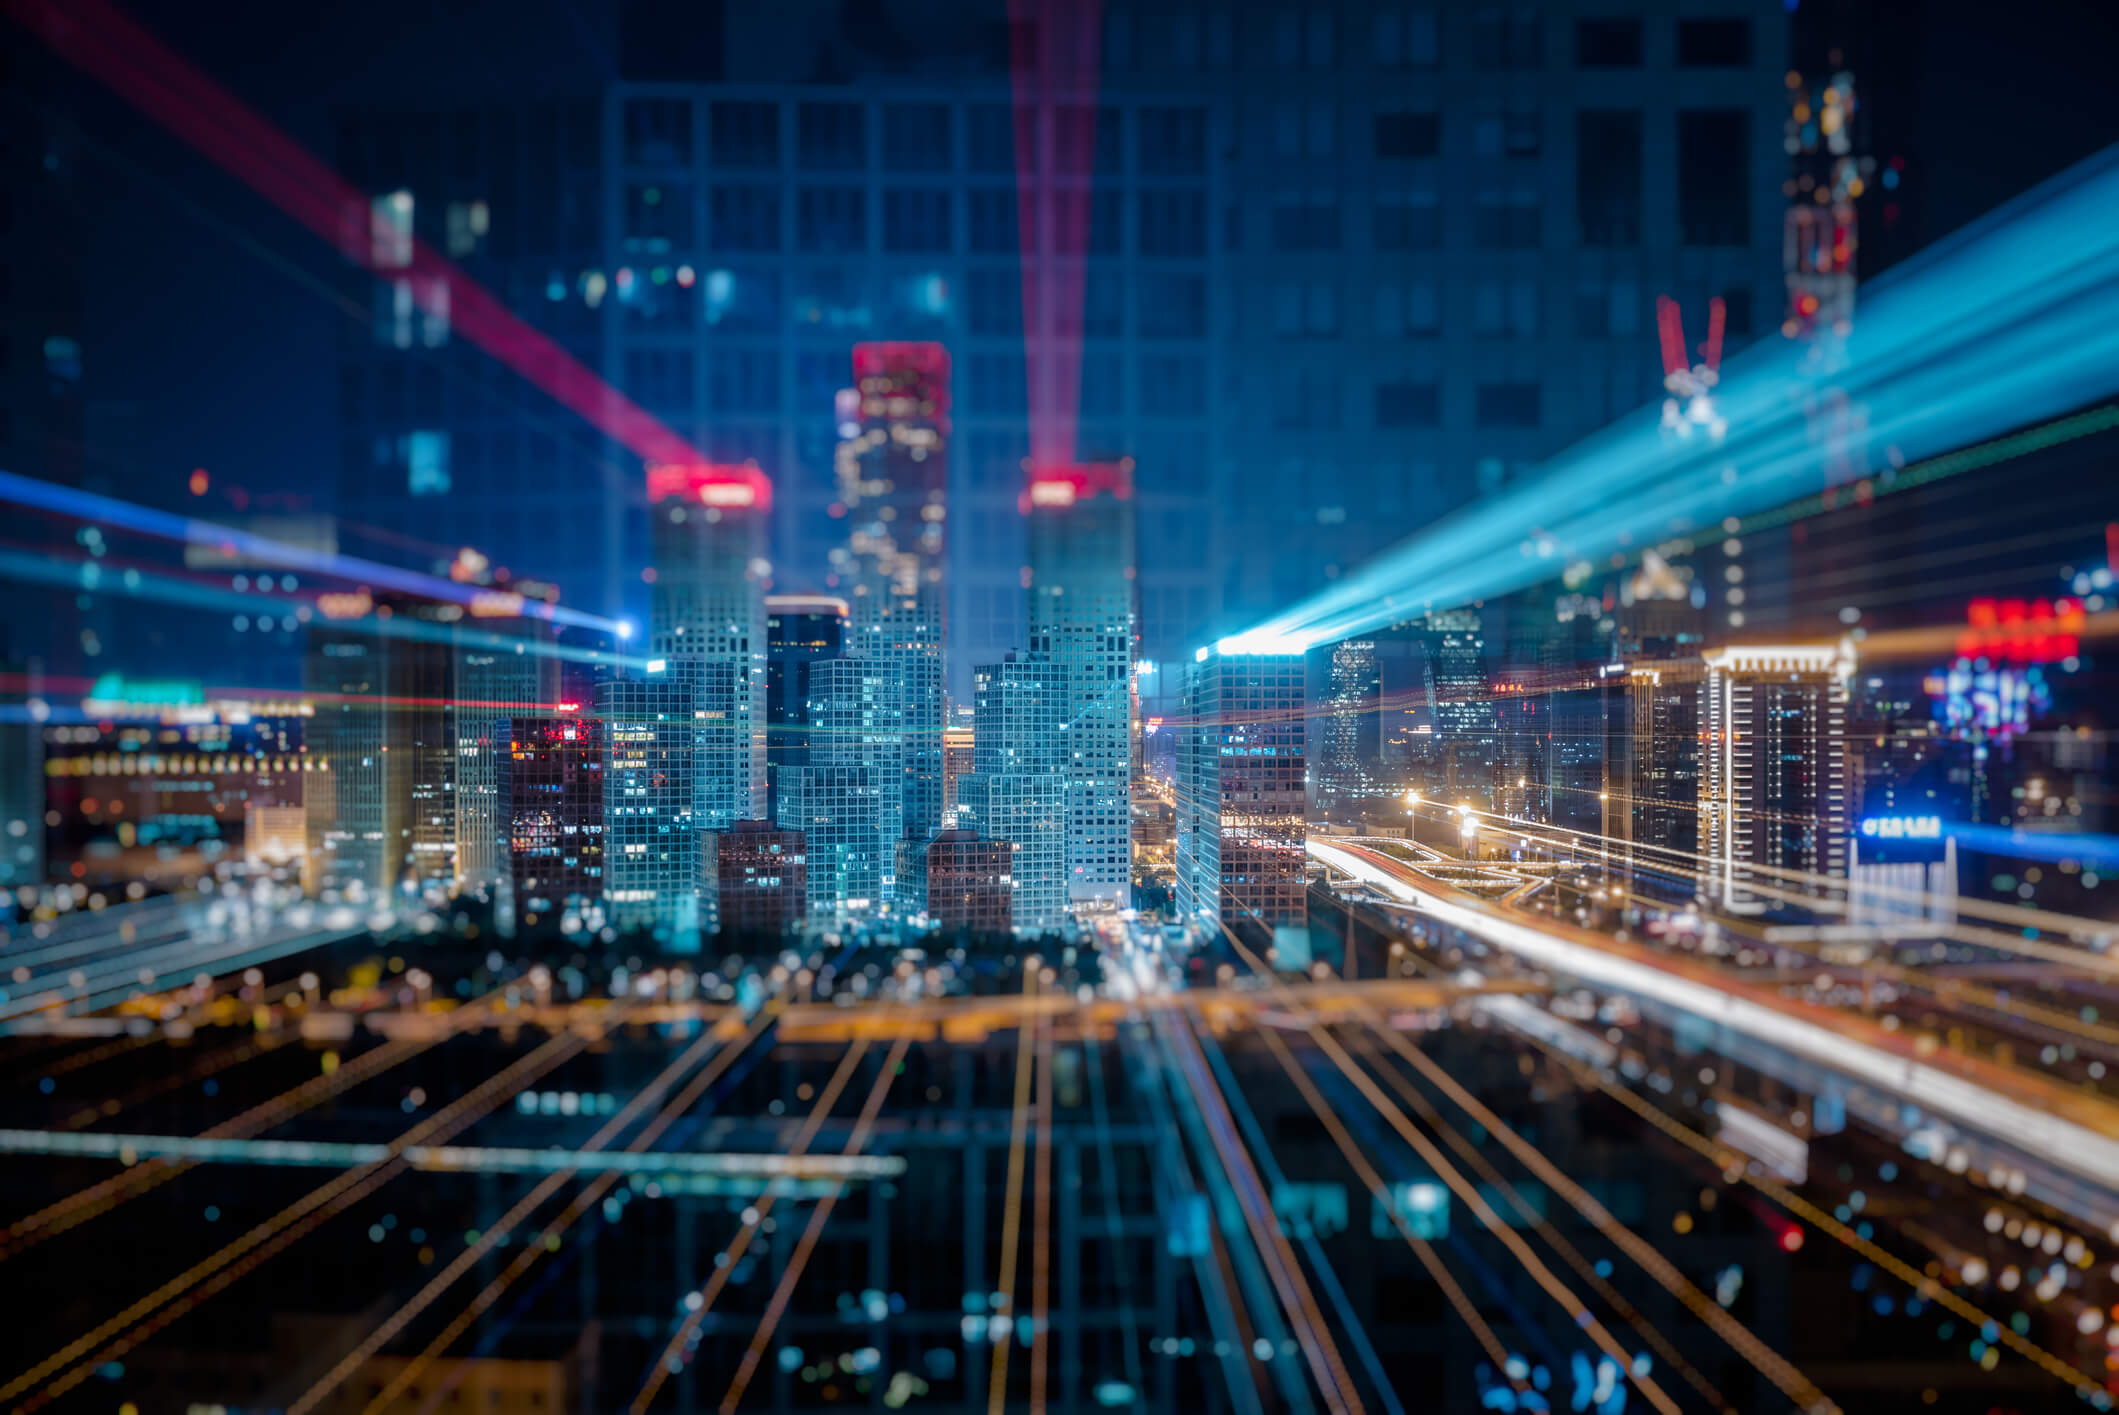 Smart cities are saving residents over 125 hours per year